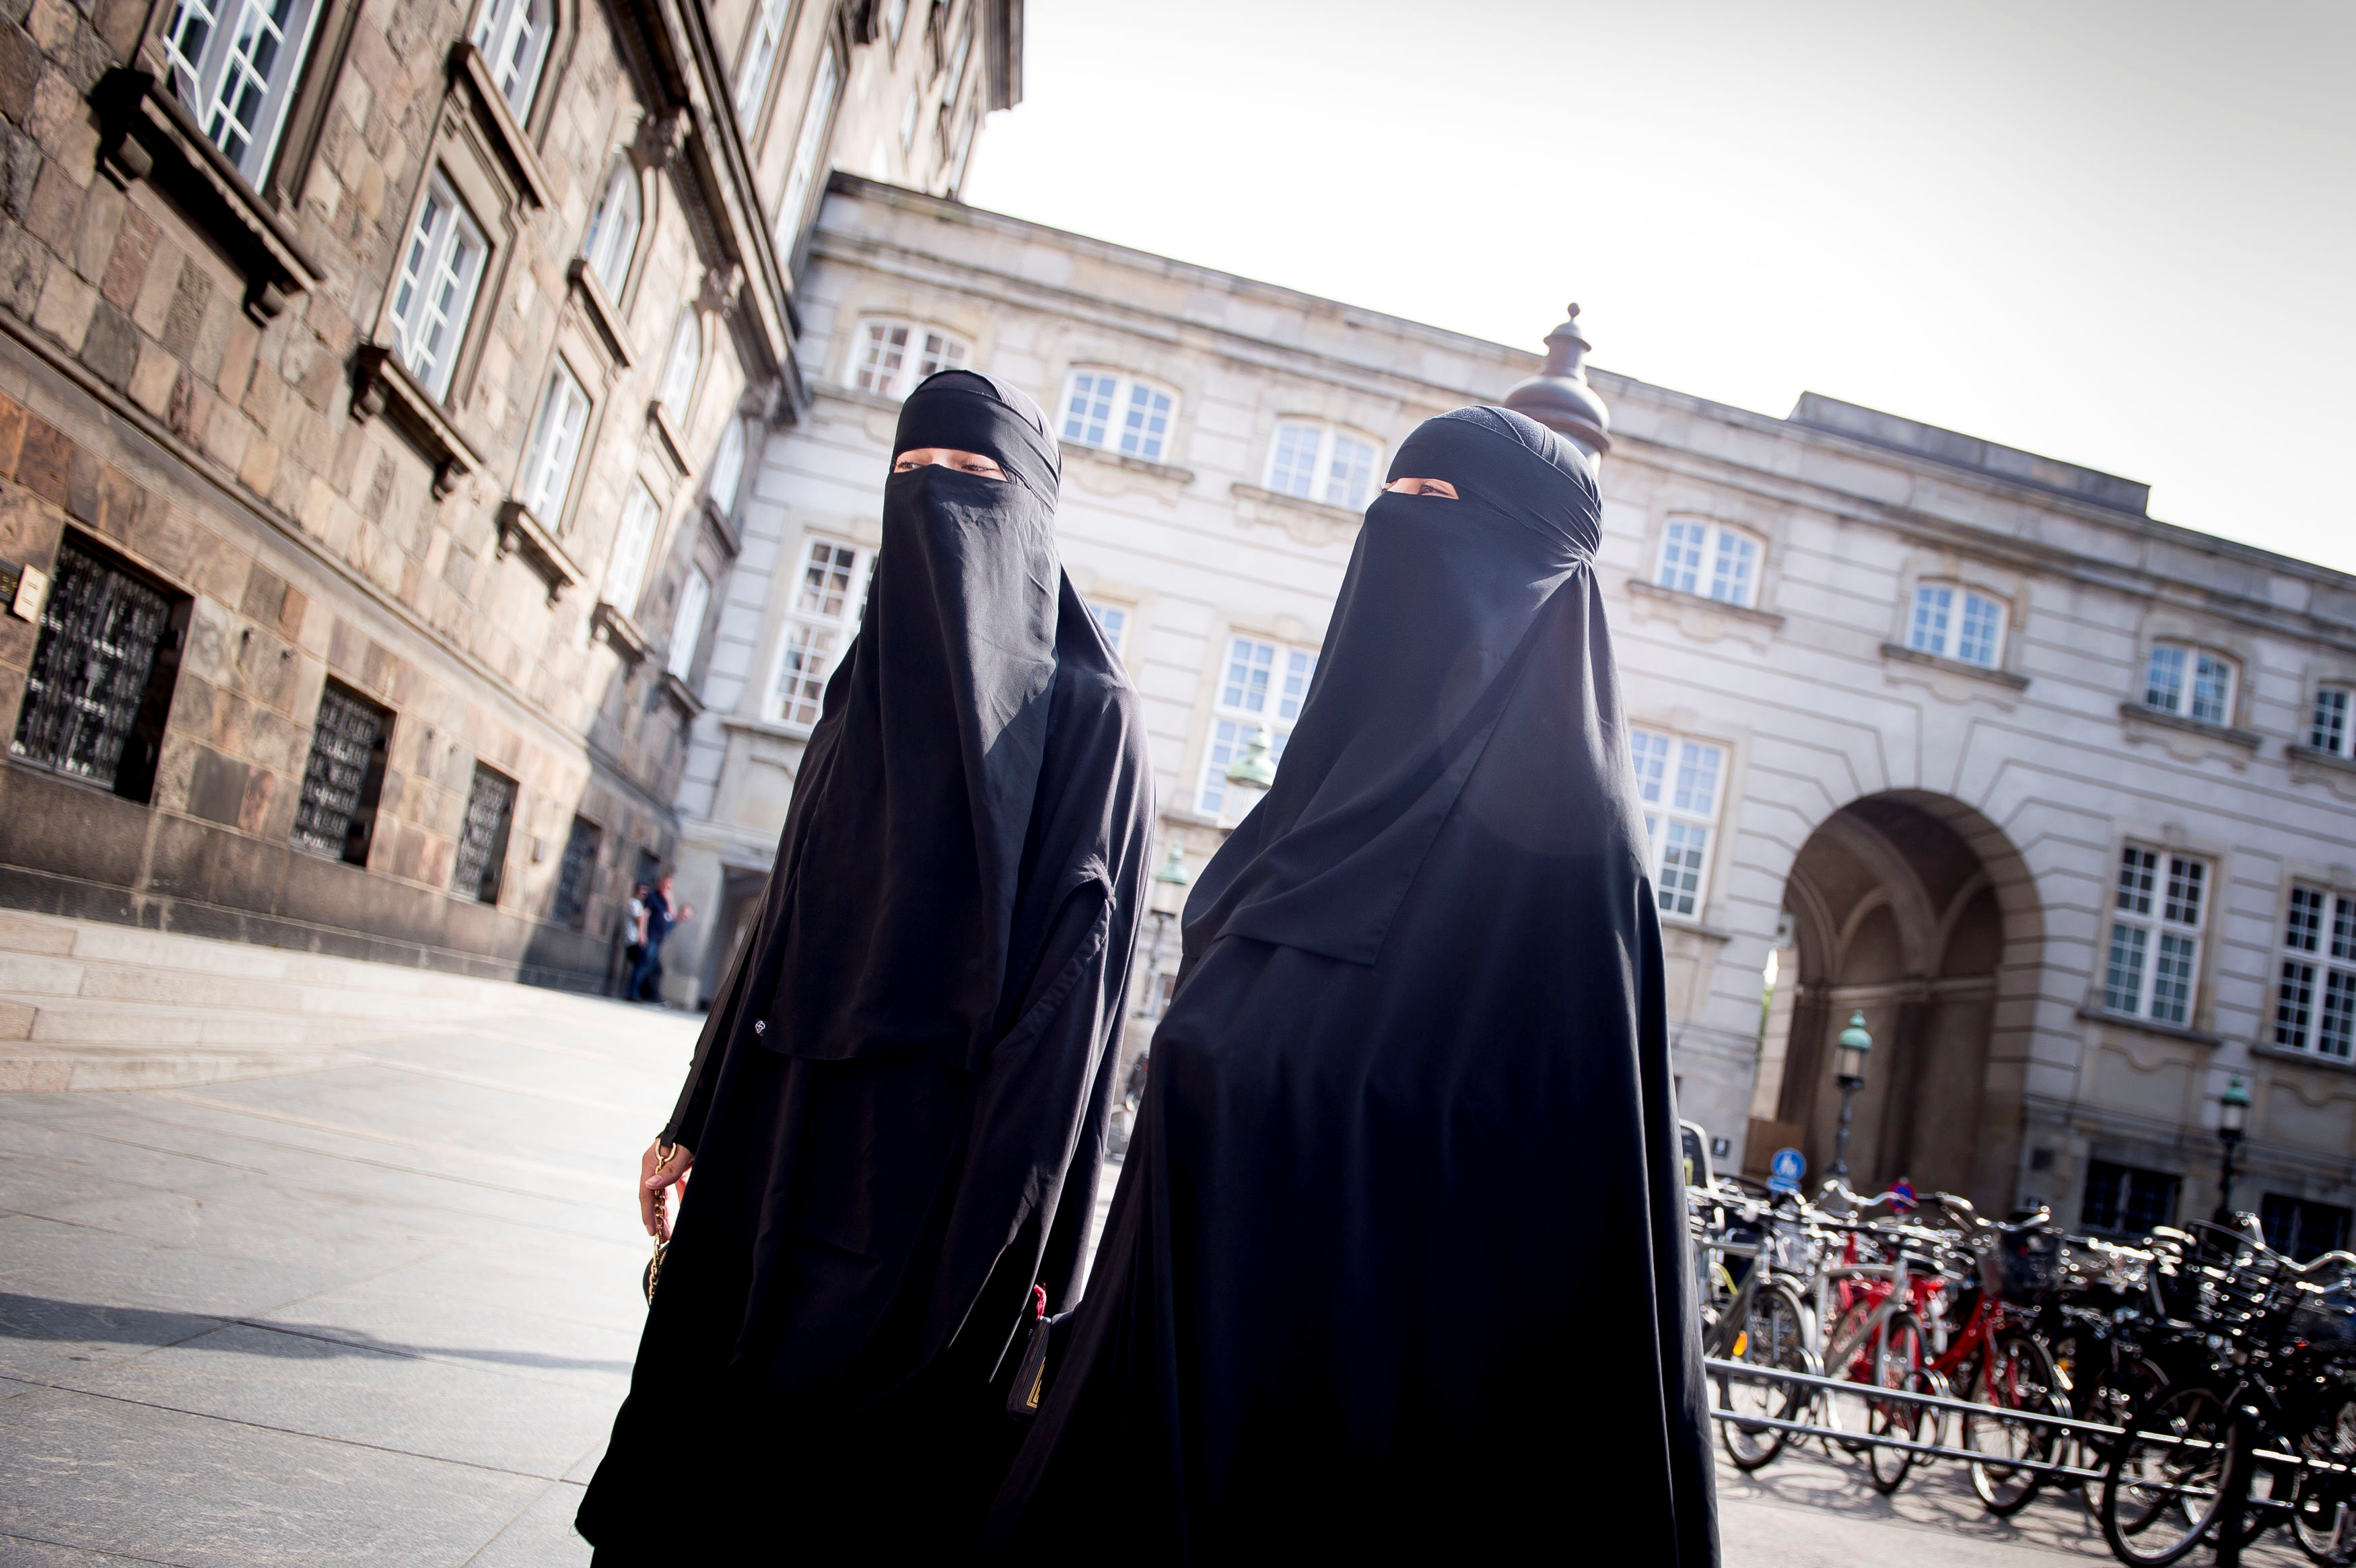 Muslims make up only about 5 per cent of Switzerland's 8.6 million people, official statistics show. ― Reuters pic